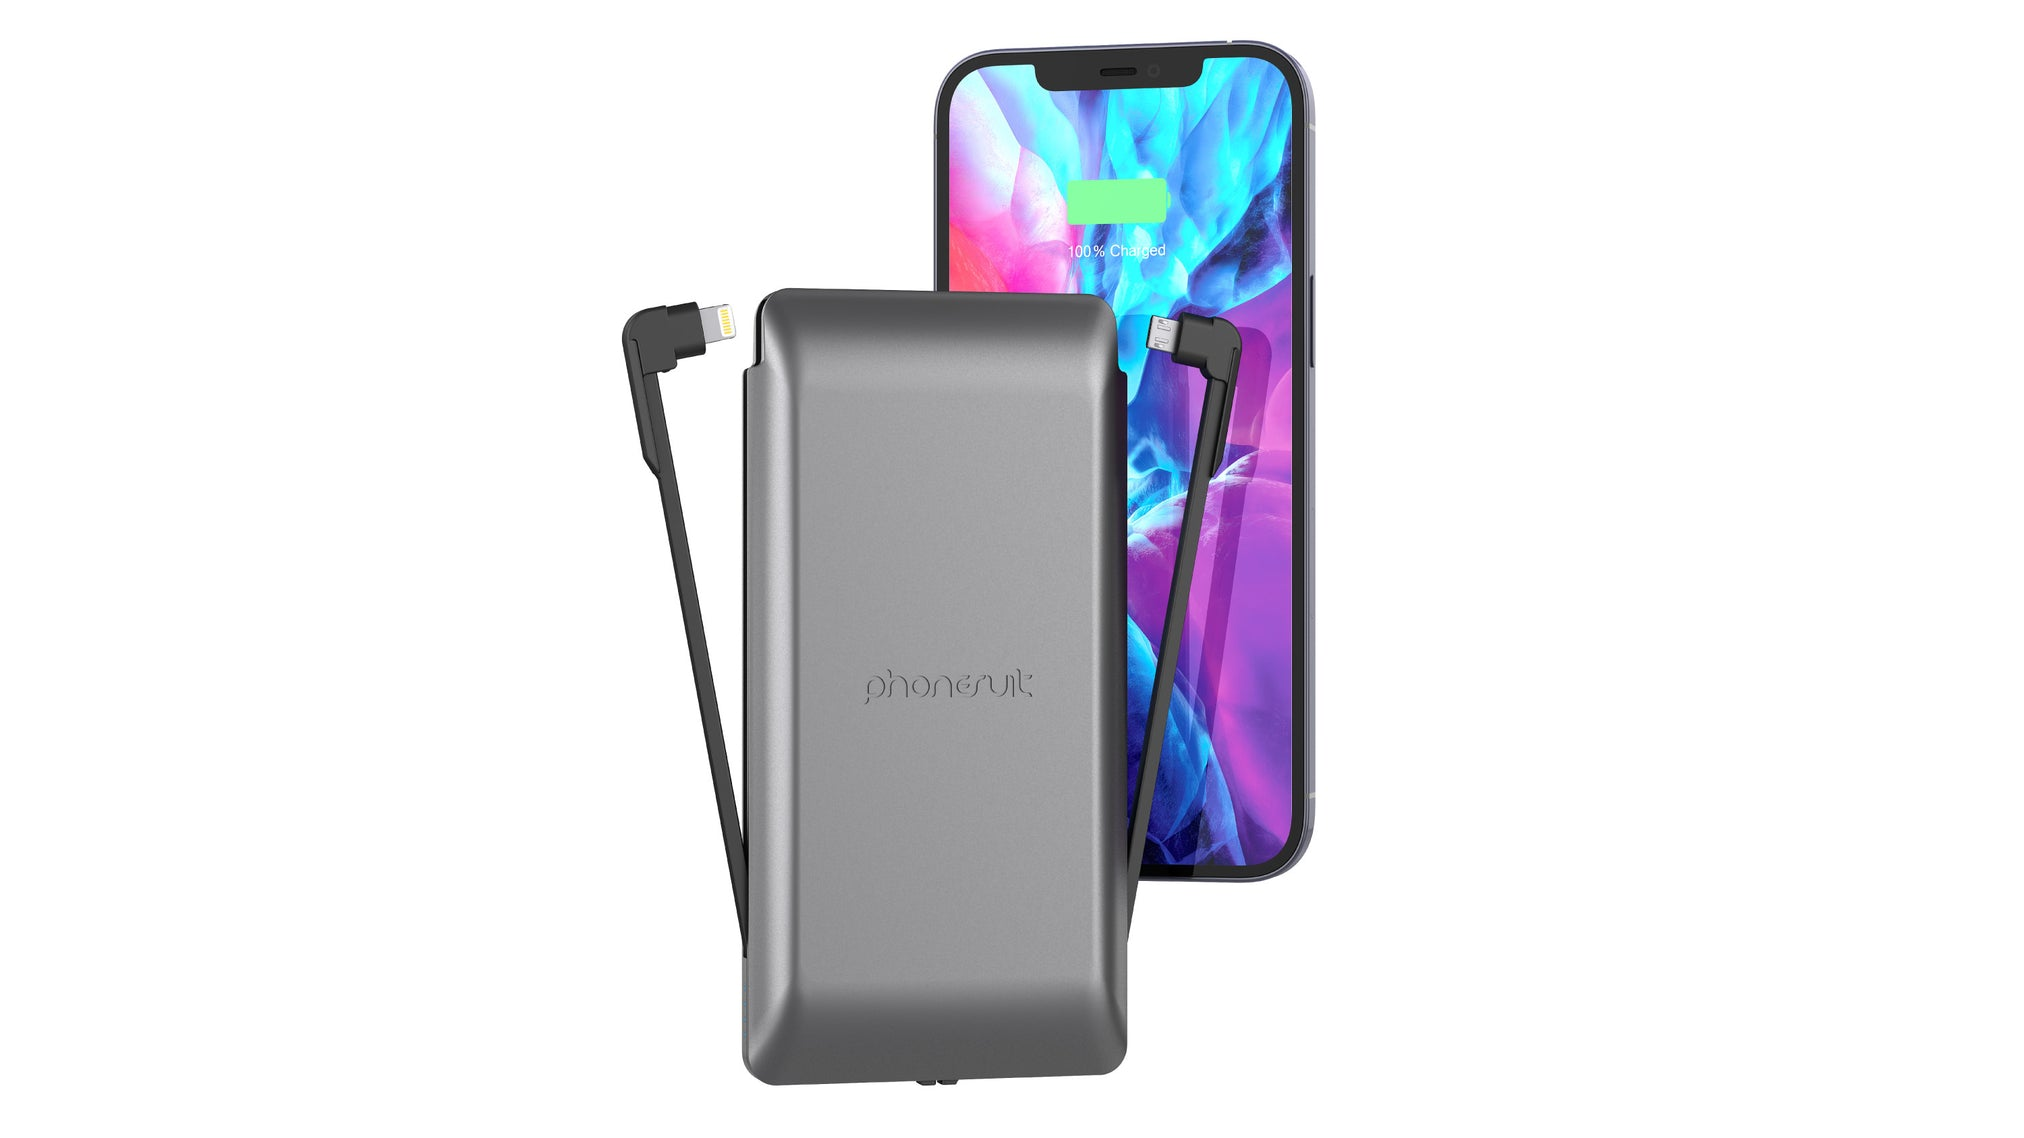 Journey MAX | Portable Pocket Charger | for iPhone, AirPods, Smartphones & More